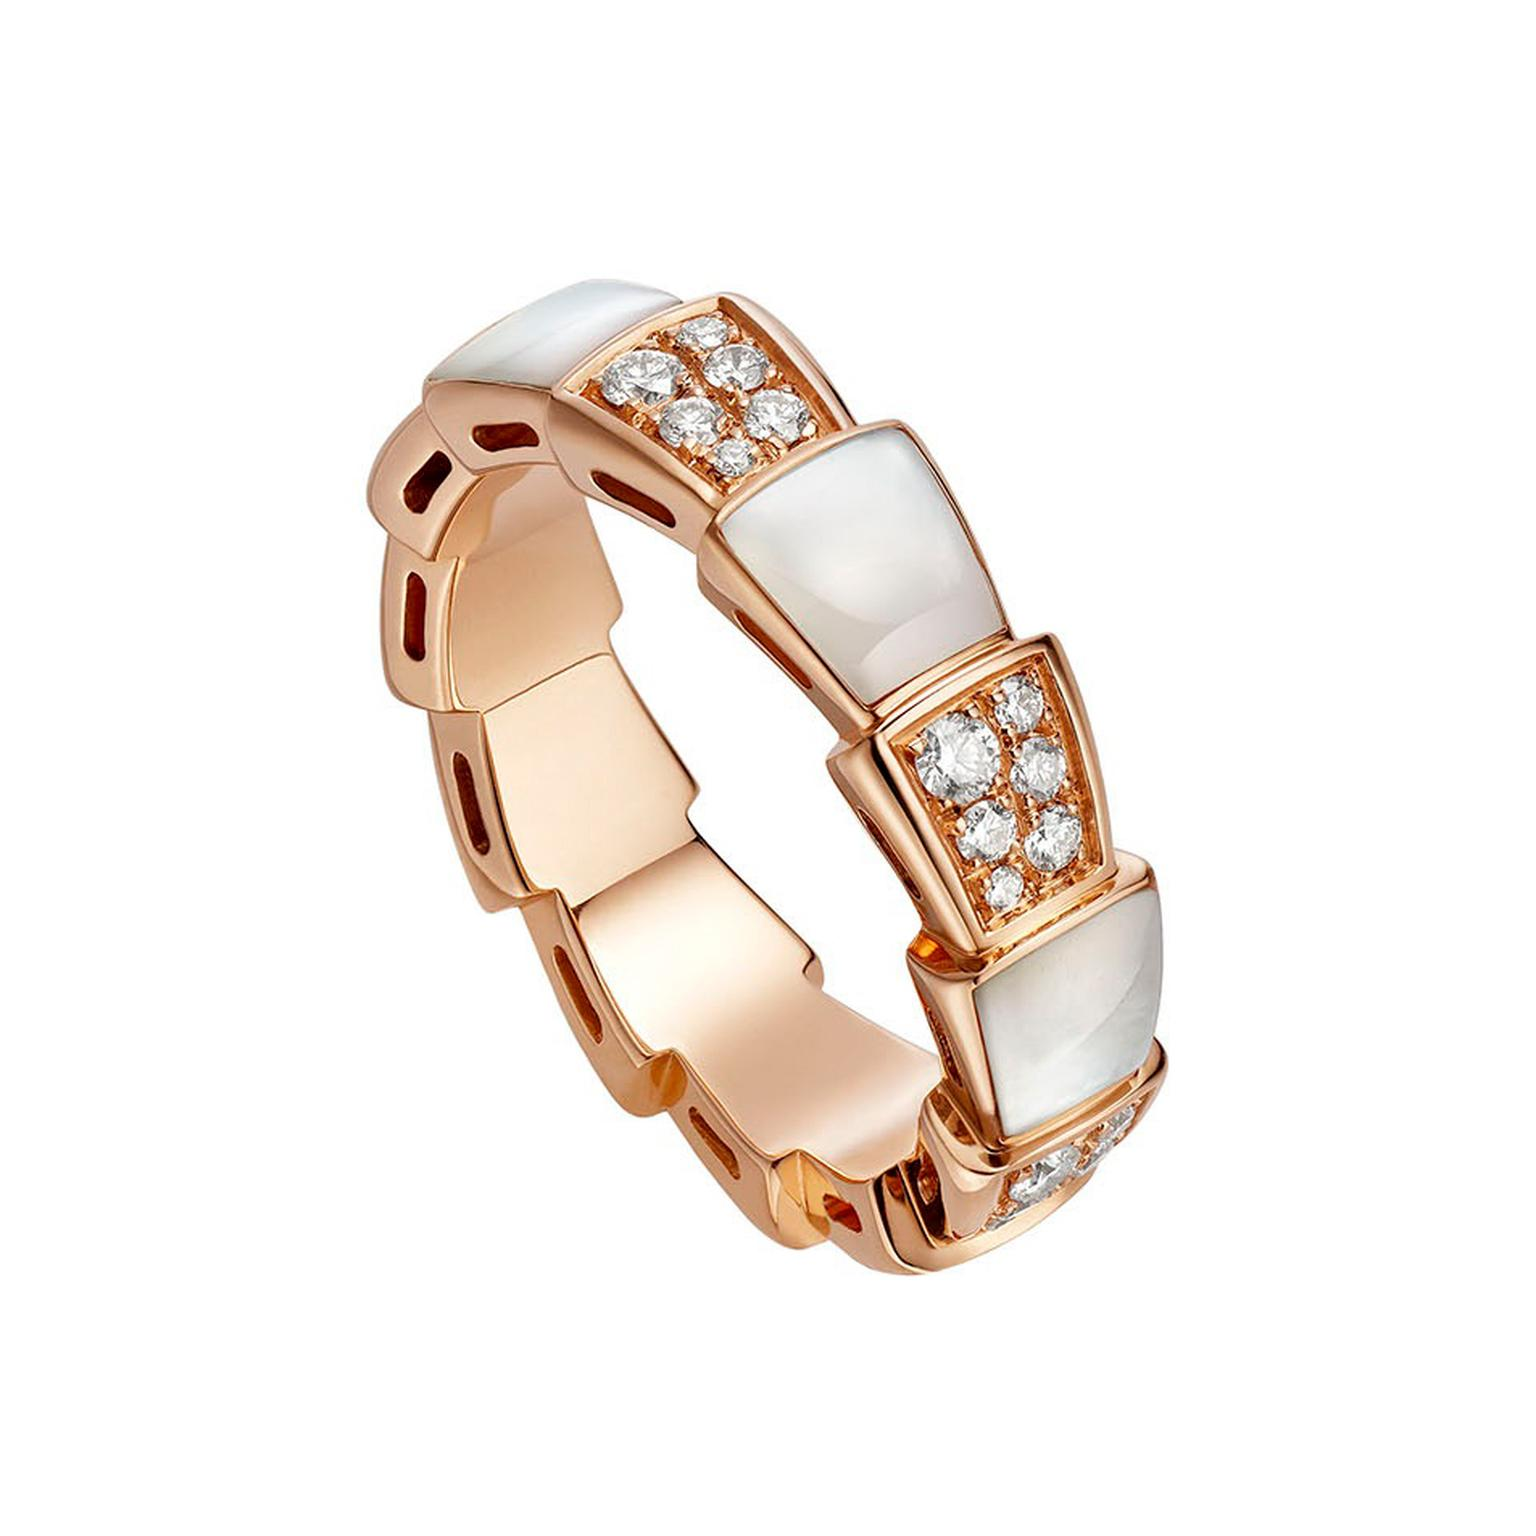 Bulgari Viper ring with mother-of-pearl